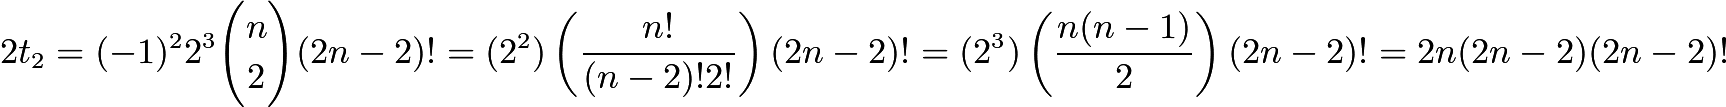 $2t_2 = (-1)^{2}2^3\binom{n}{2}(2n-2)! = (2^2)\left(\frac{n!}{(n-2)!2!}\right)(2n-2)! = (2^3)\left(\frac{n(n-1)}{2}\right)(2n-2)! = 2n(2n-2)(2n-2)!$